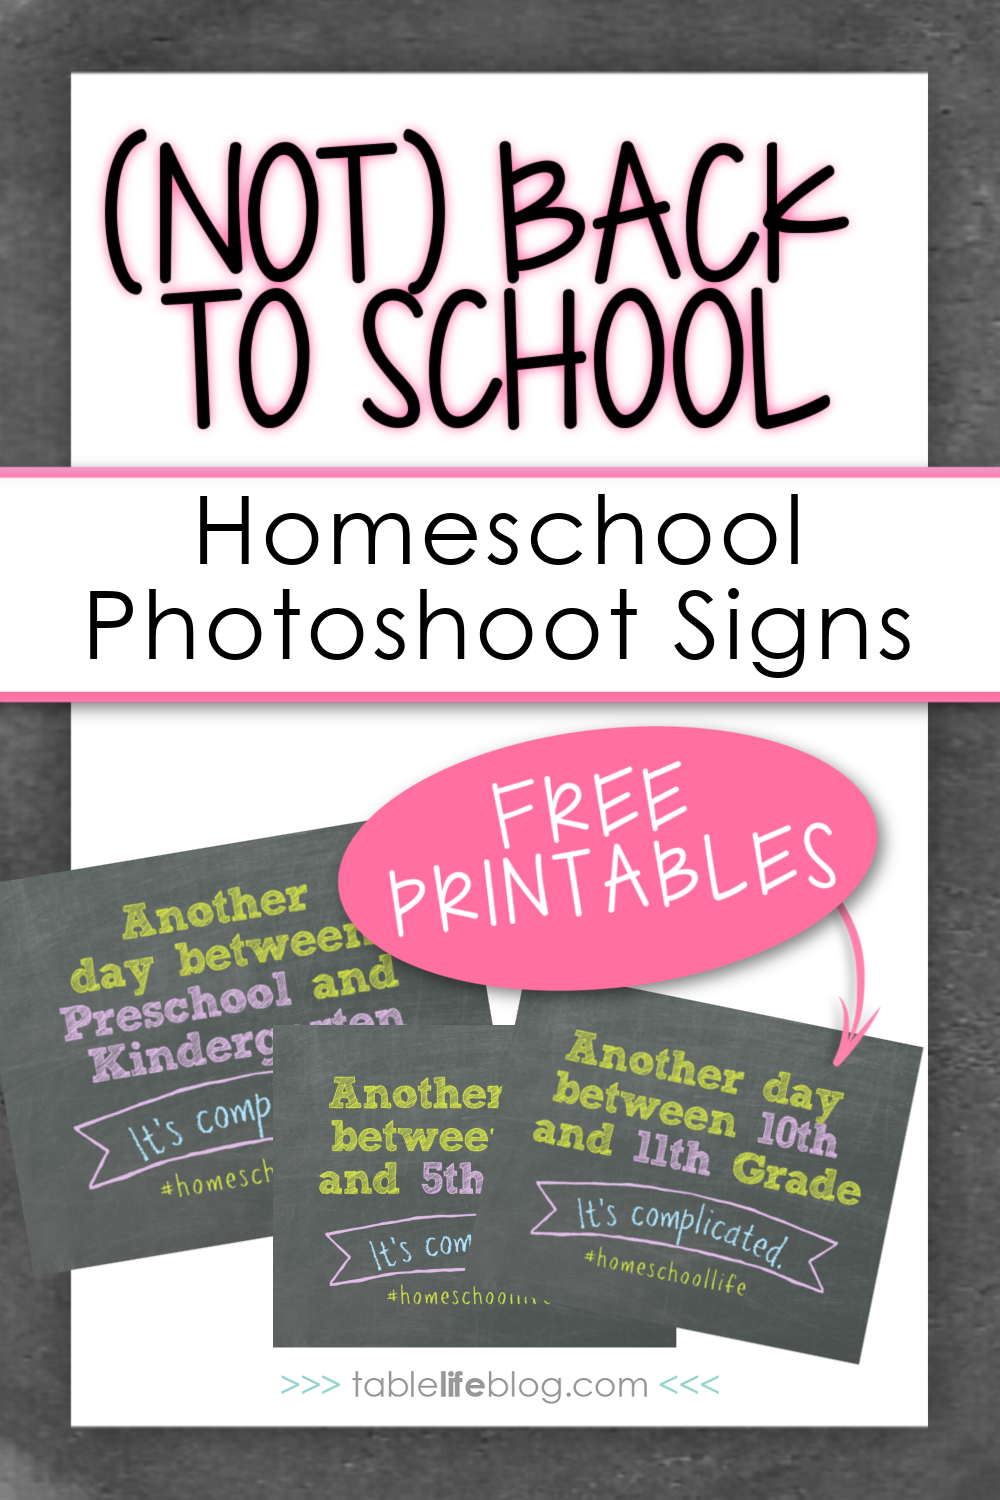 Celebrate (not) back to school with these fun homeschool photoshoot signs!